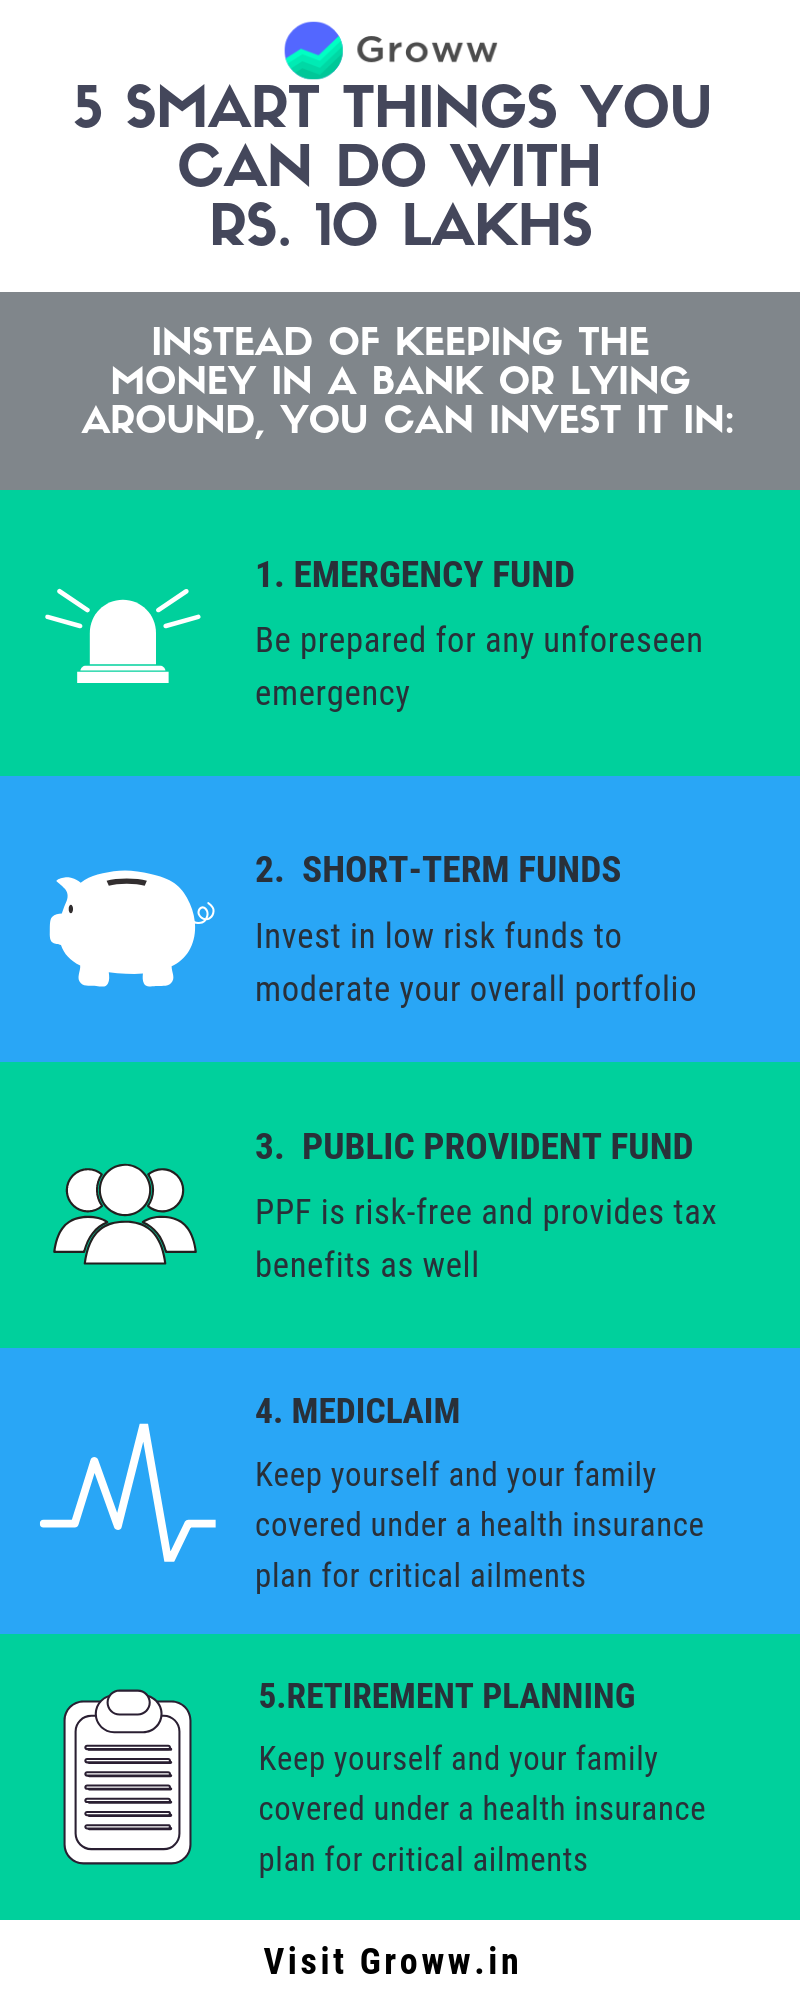 5 smart ways to invest Rs. 10 lakhs